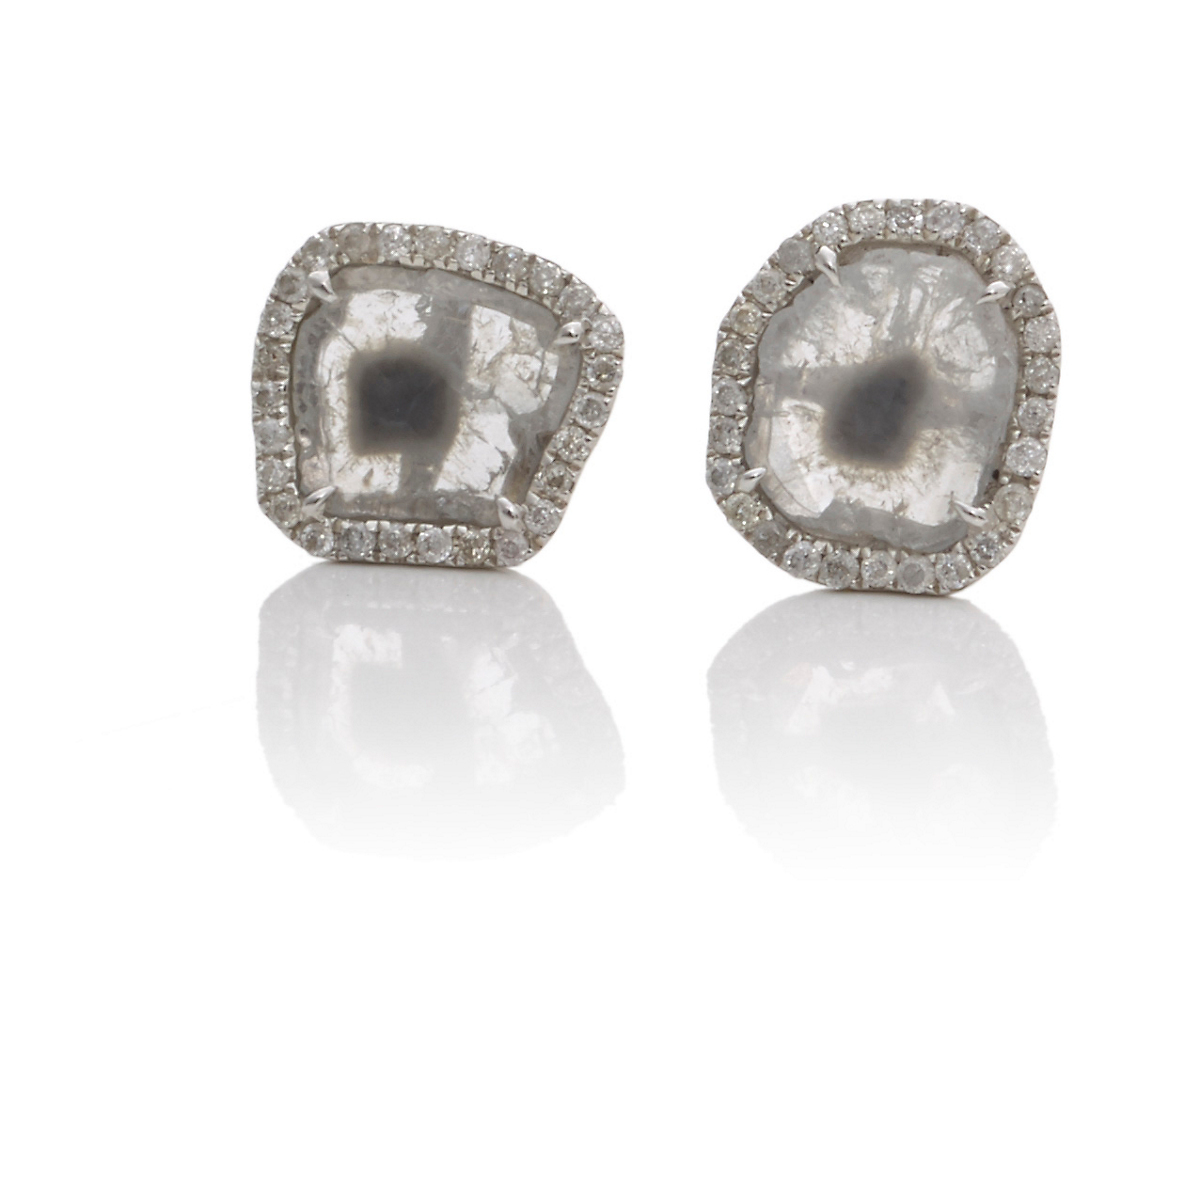 Ashley Morgan White Gold & Diamond Slice Earring